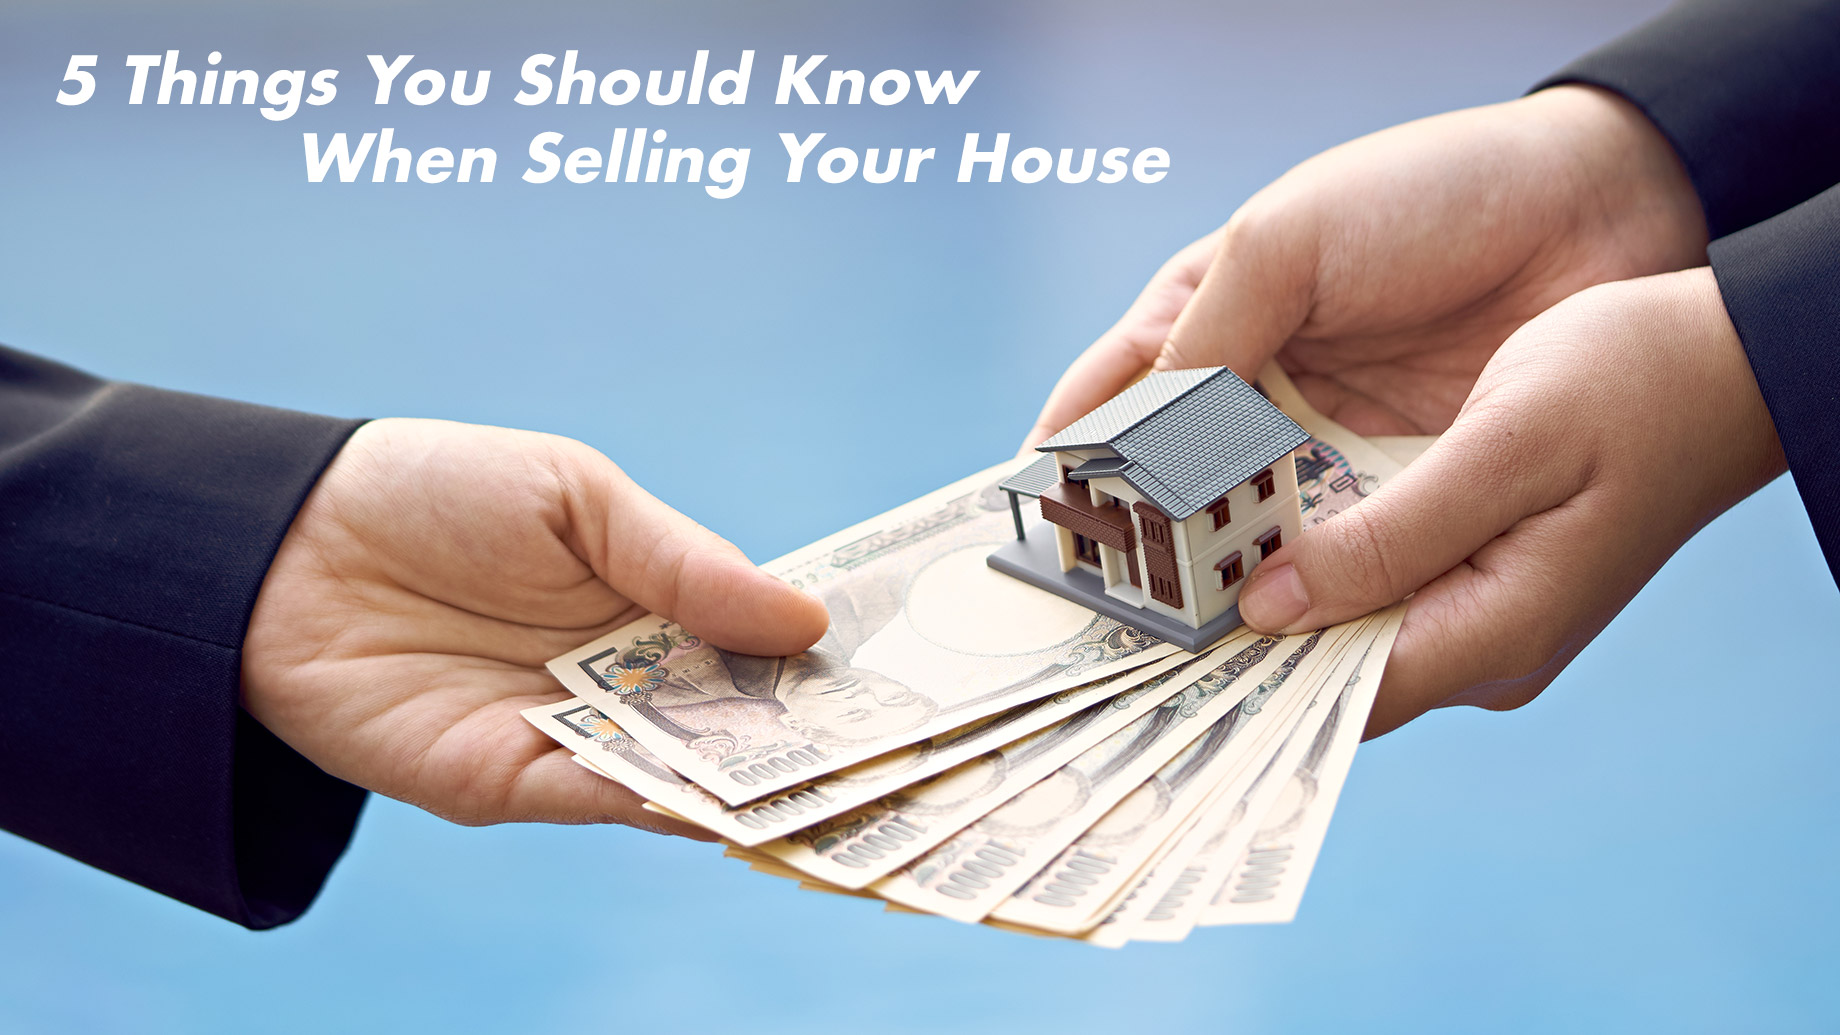 5 Things You Should Know When Selling Your House